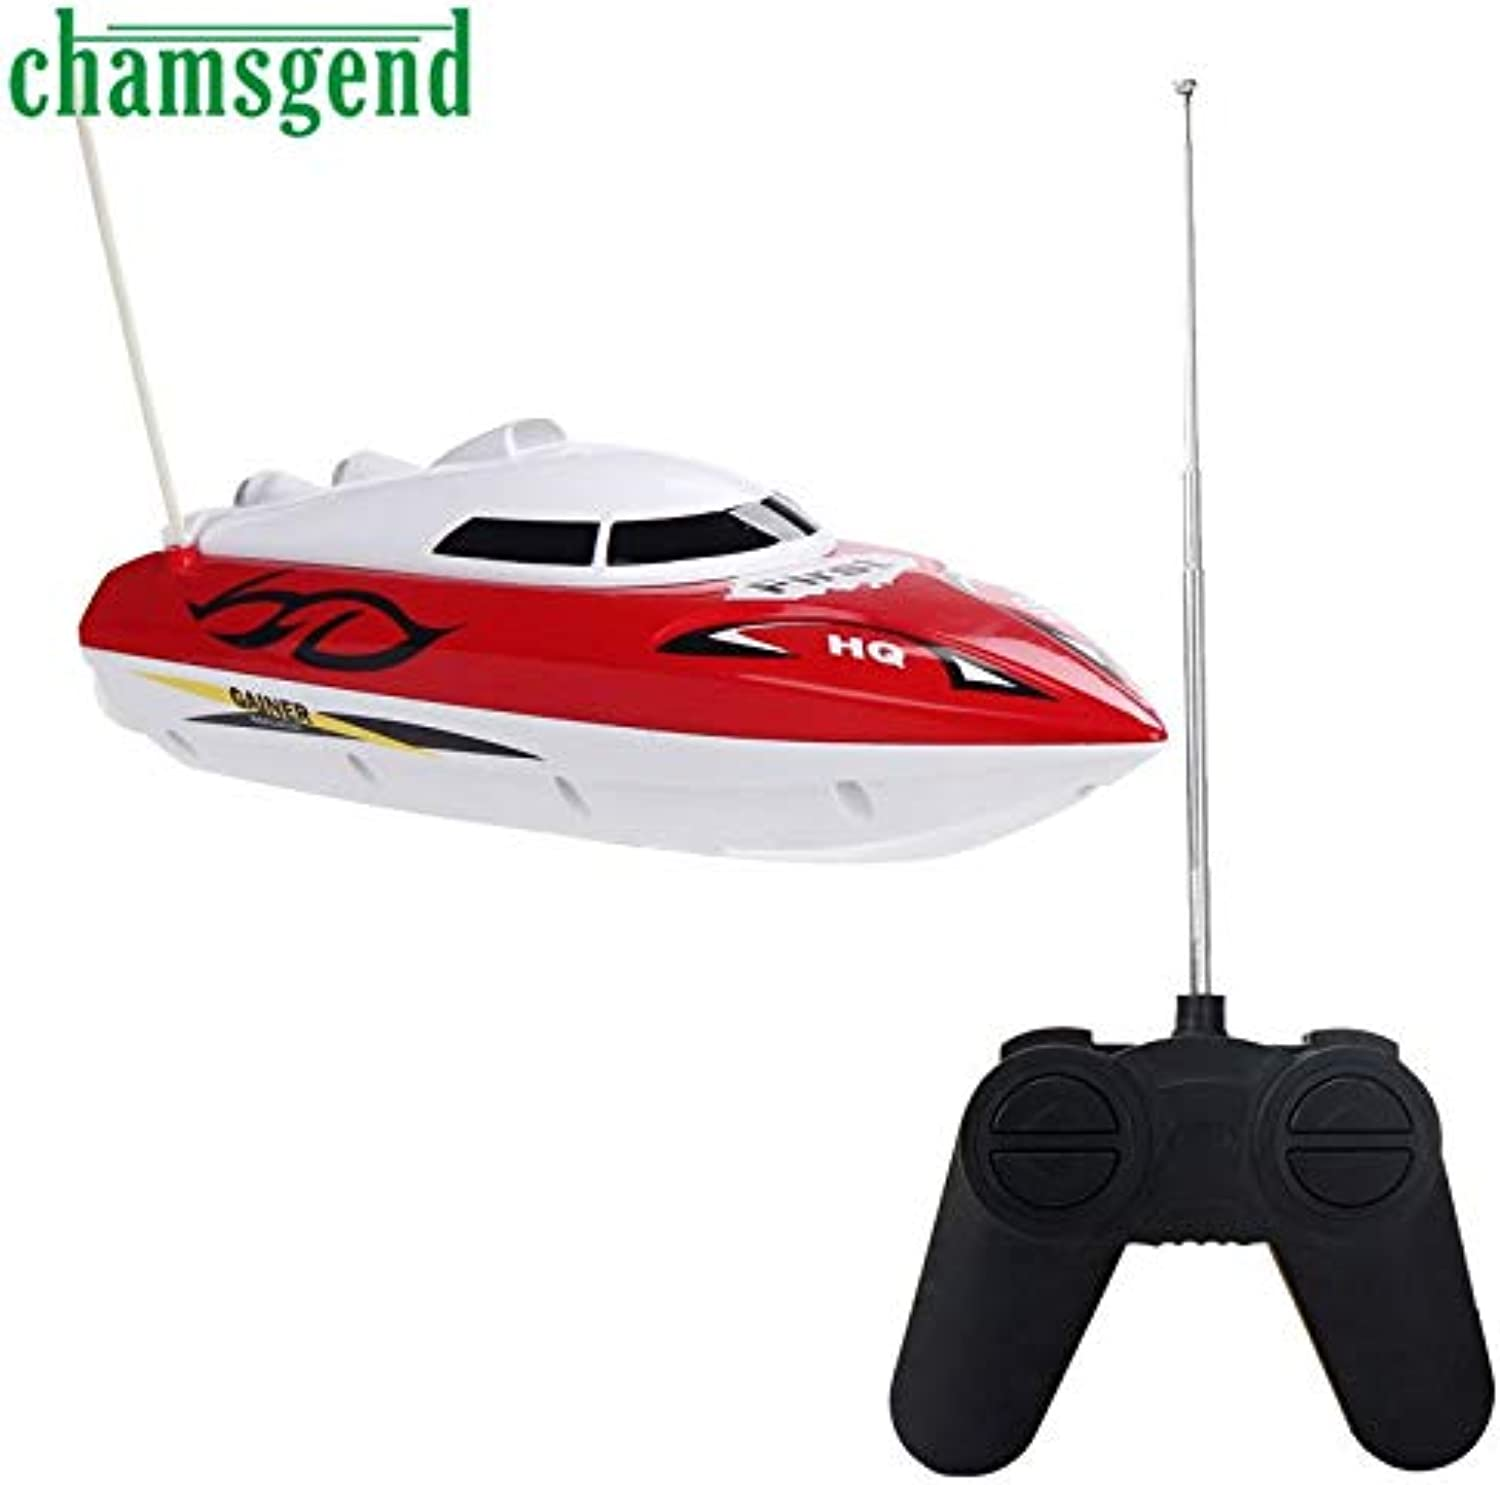 Generic Chamsgend Hot 10 inch RC Boat Radio Remote Control RTR Electric Dual Motor Toy SEP 04